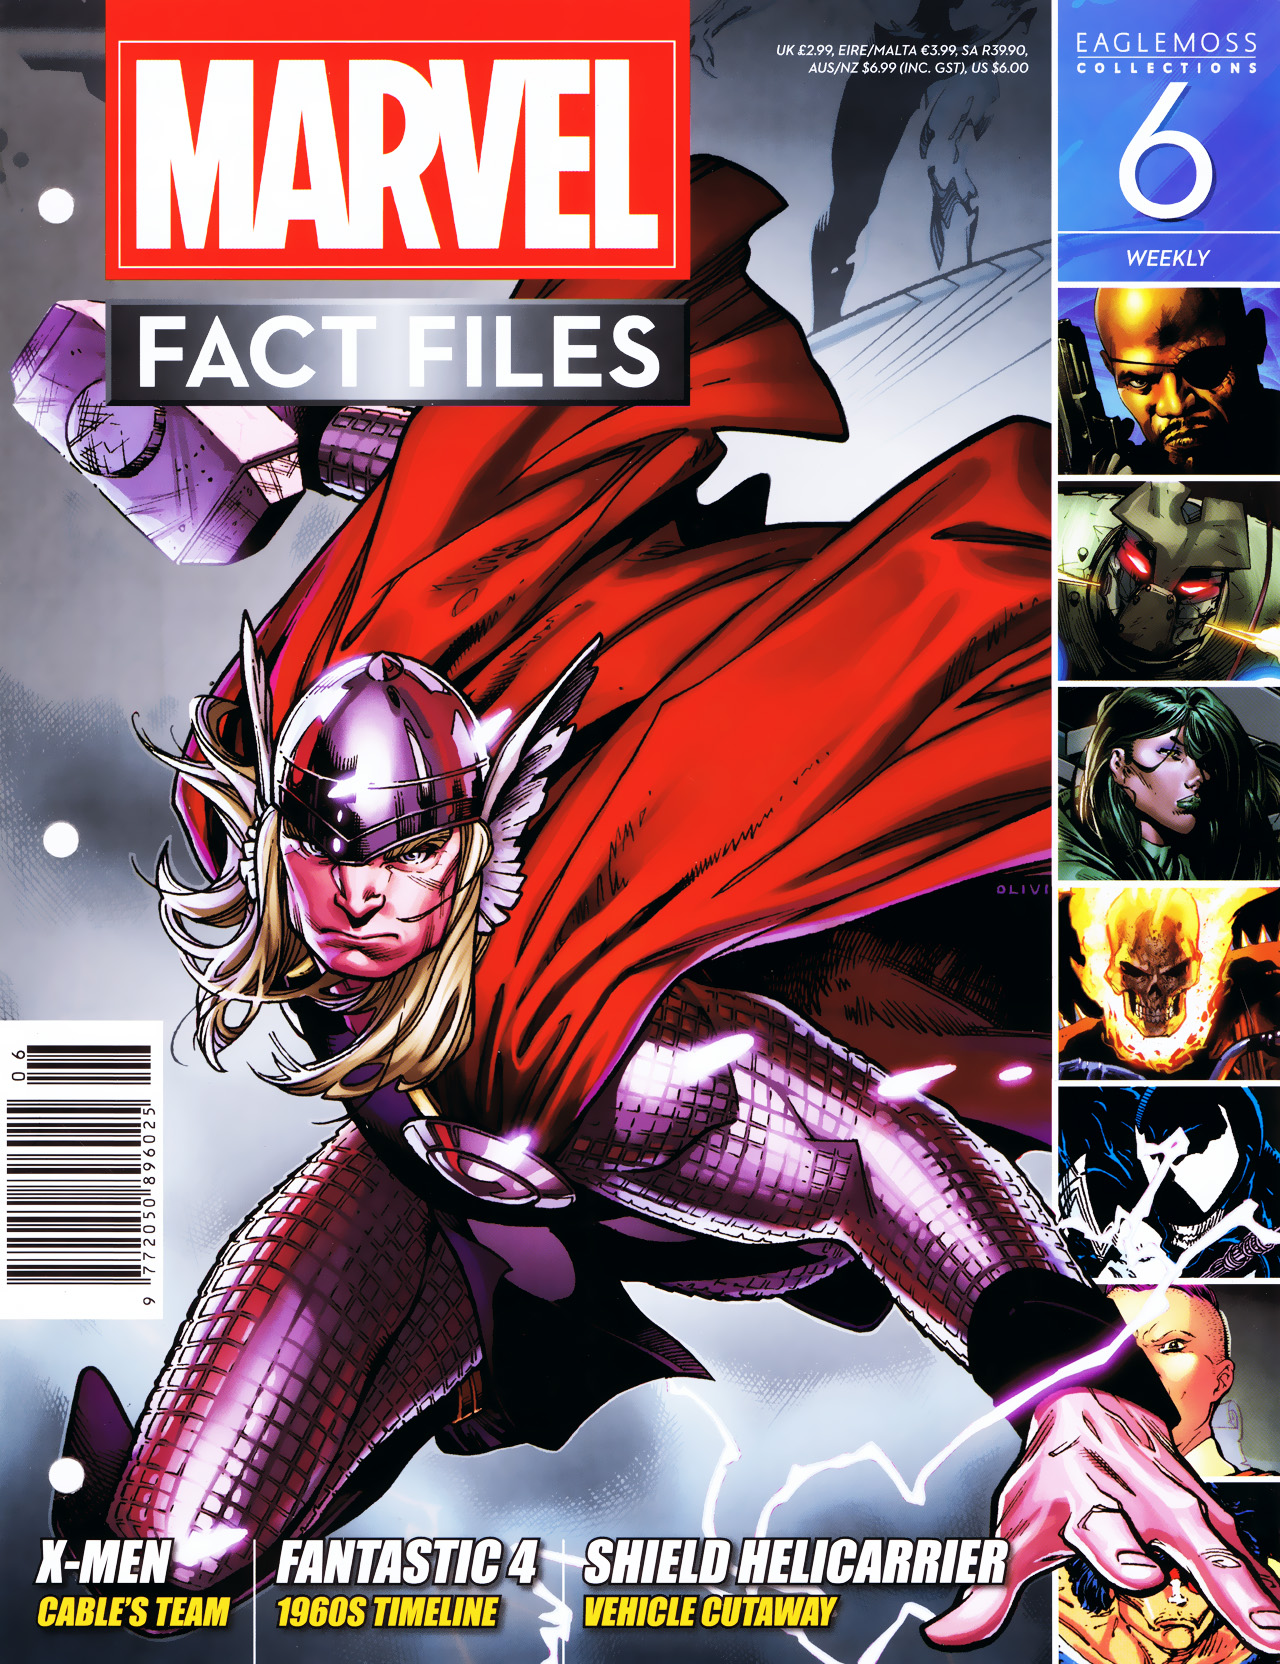 Marvel Fact Files 6 Page 1